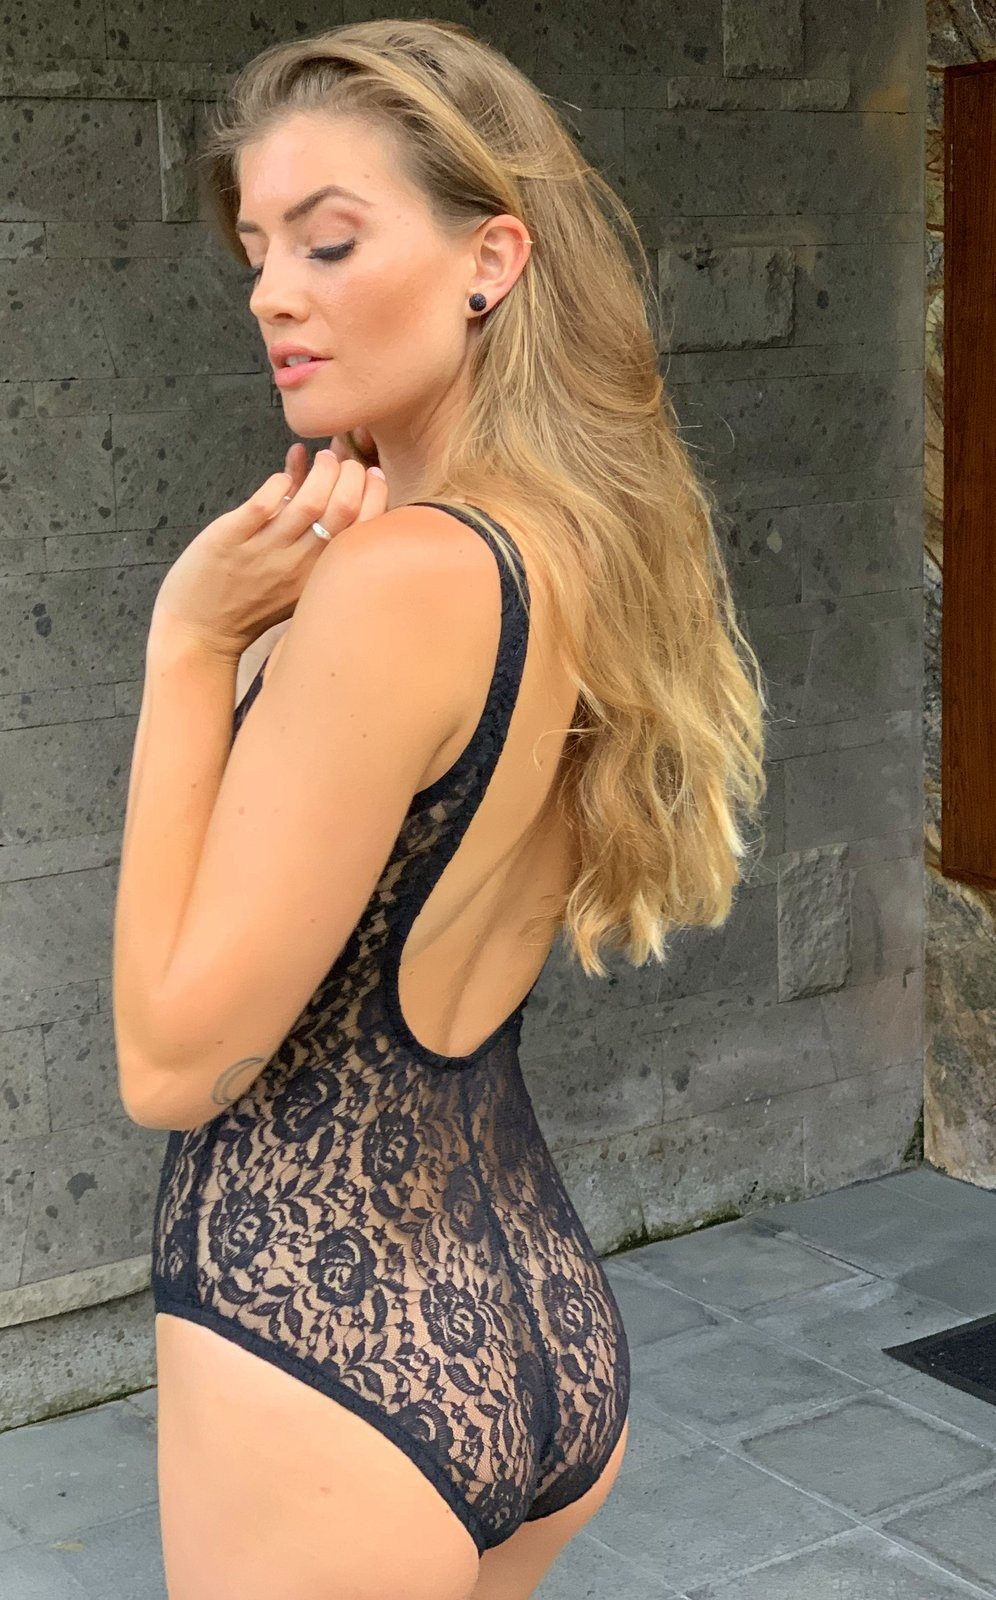 ac51987af3c7 UjENA Sheer French Lace One Piece. FREE Shipping with code 1300.